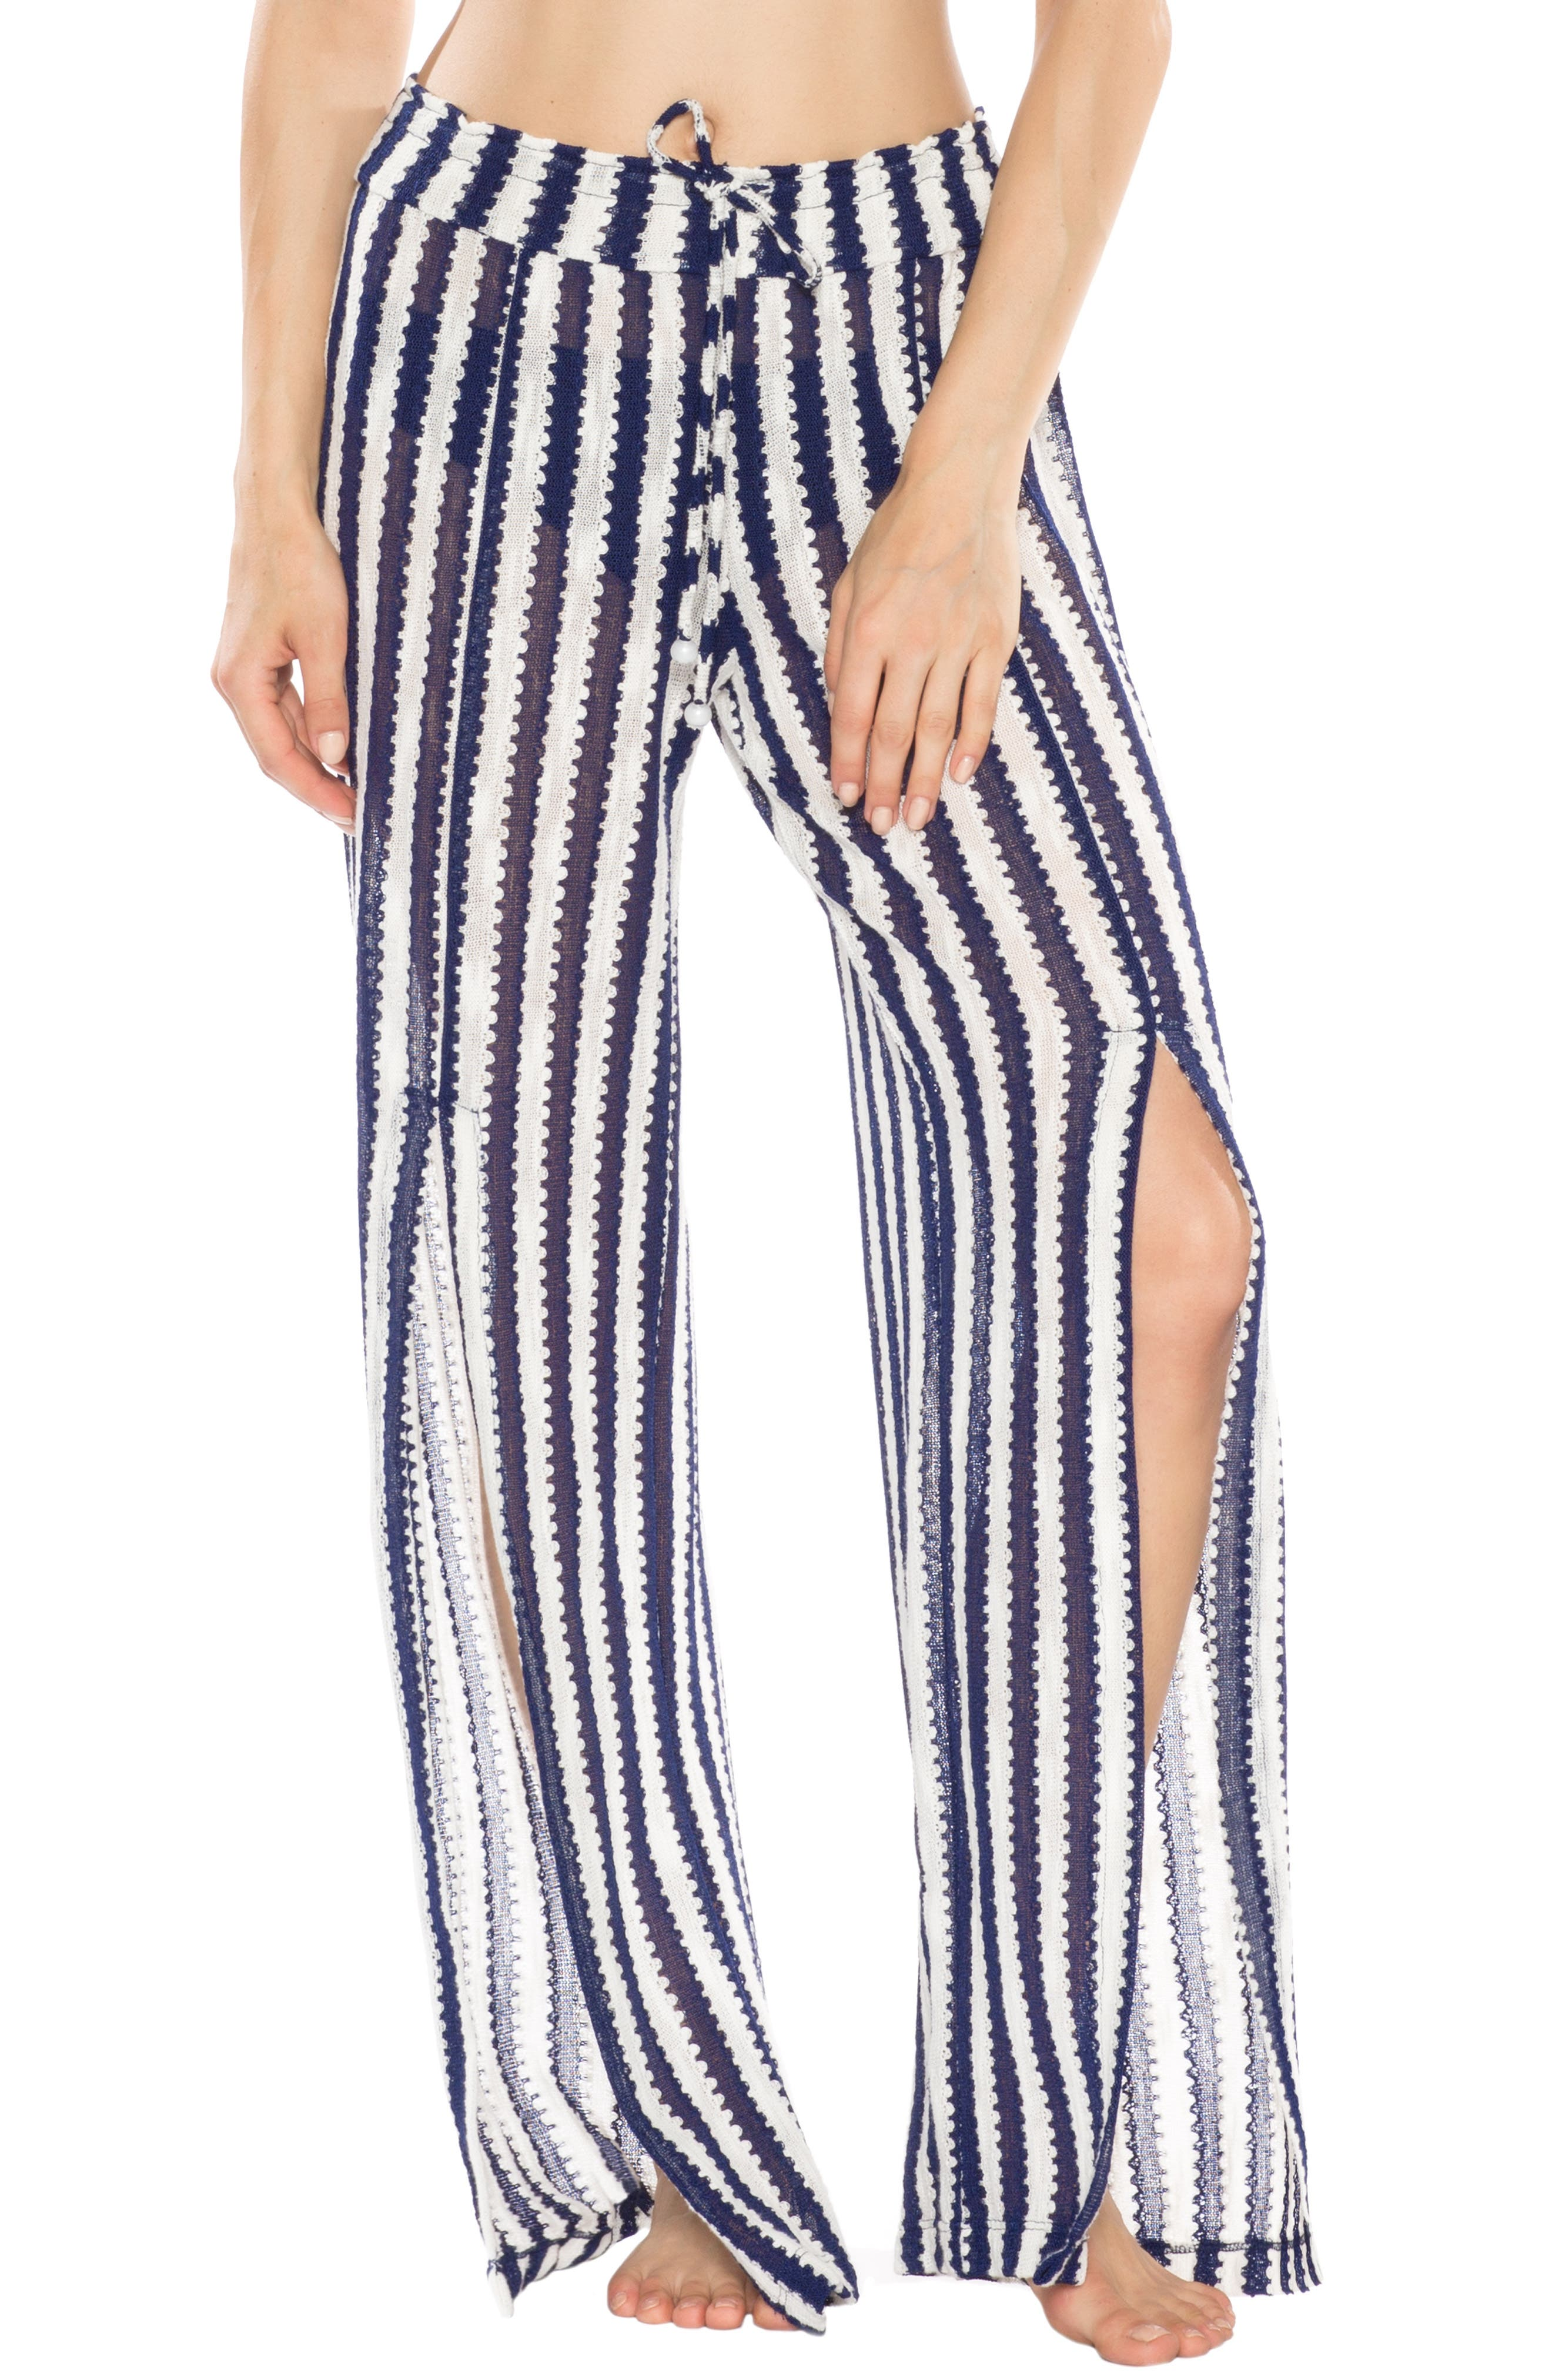 ISABELLA ROSE Ships Ahoy Cover-Up Pants in Navy/ White